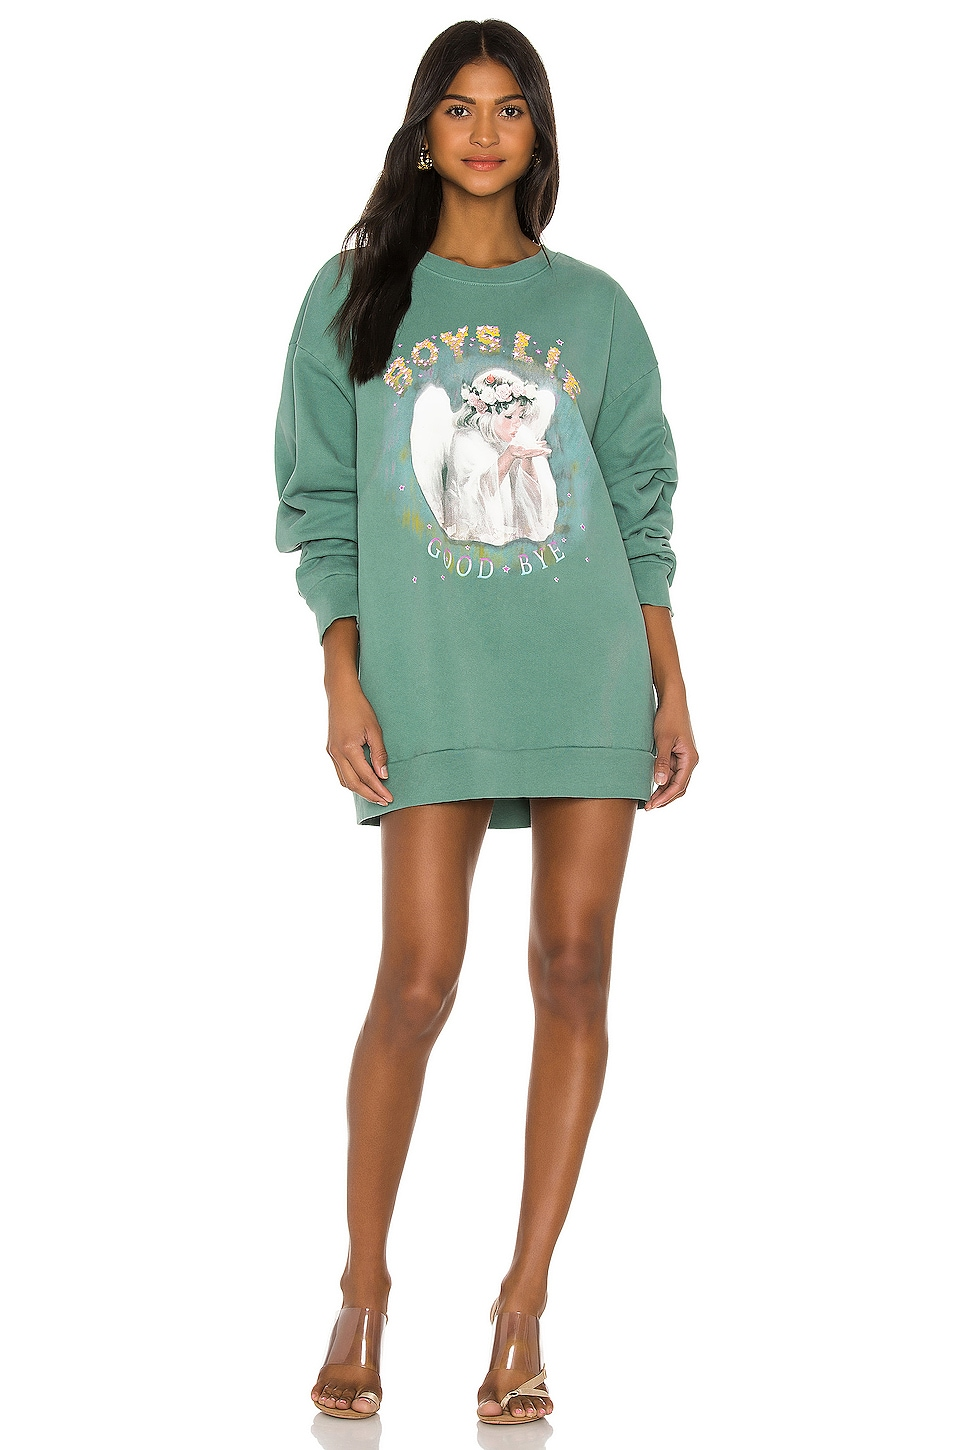 Boys Lie, Good Bye Crewneck             Boys Lie                                                                                                       CA$ 151.62 3